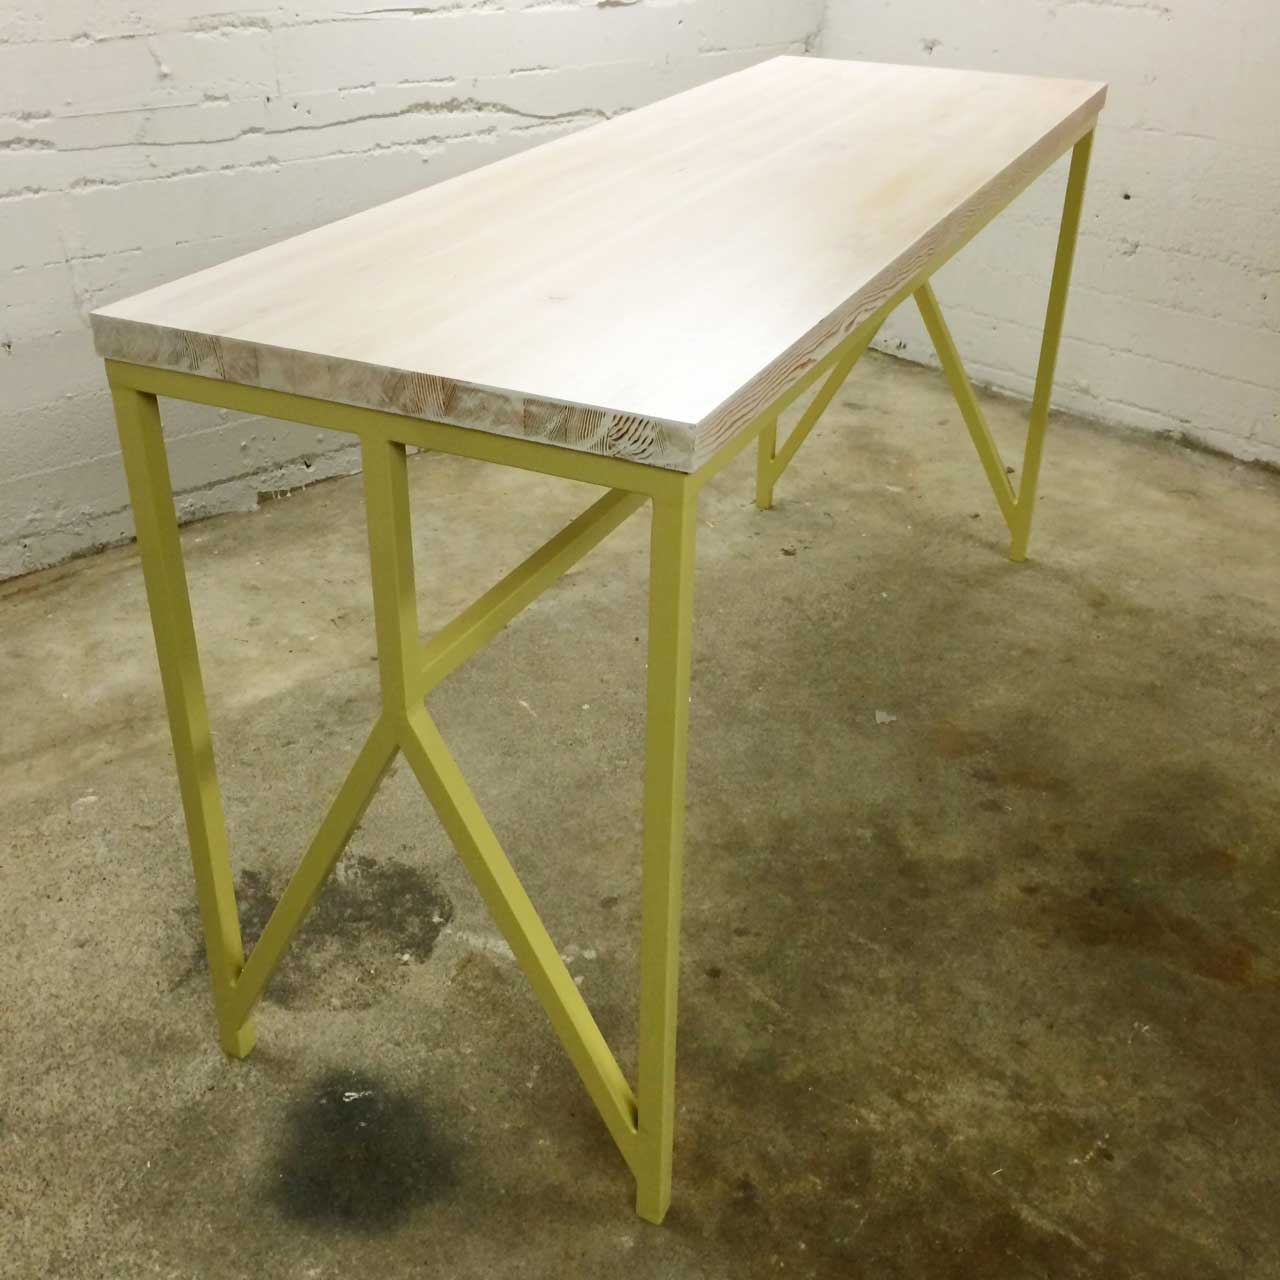 Best Metal Workbench for Best Furniture Design Ideas: Steel Workbenches For Sale | Wooden Work Bench Kits | Metal Workbench